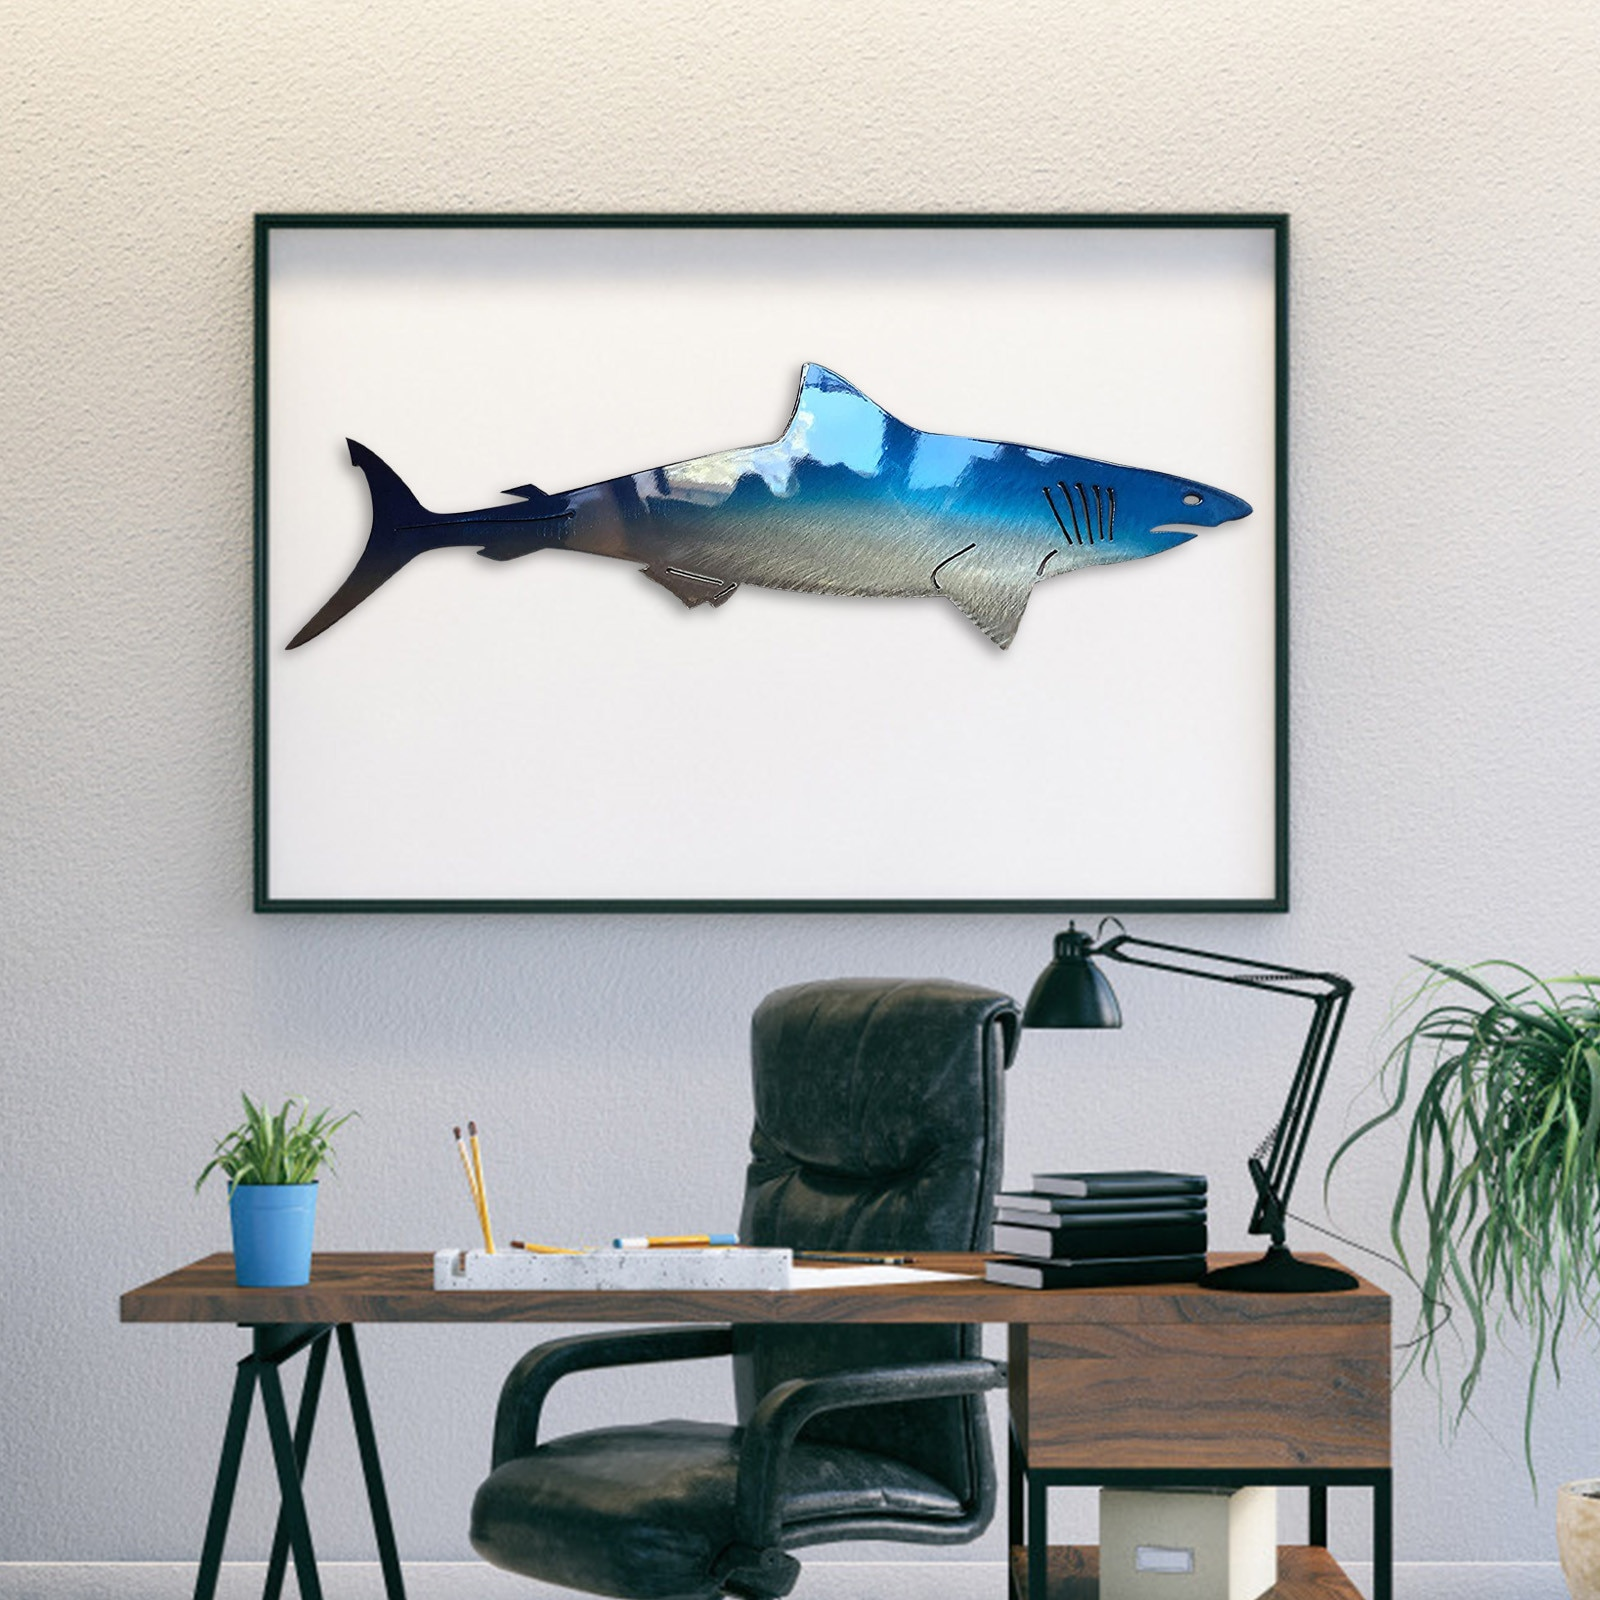 New Creative Wall Hanging Jewelry Sharks Figurine Home Decor Art Decoration Living Room Bedroom Accessories